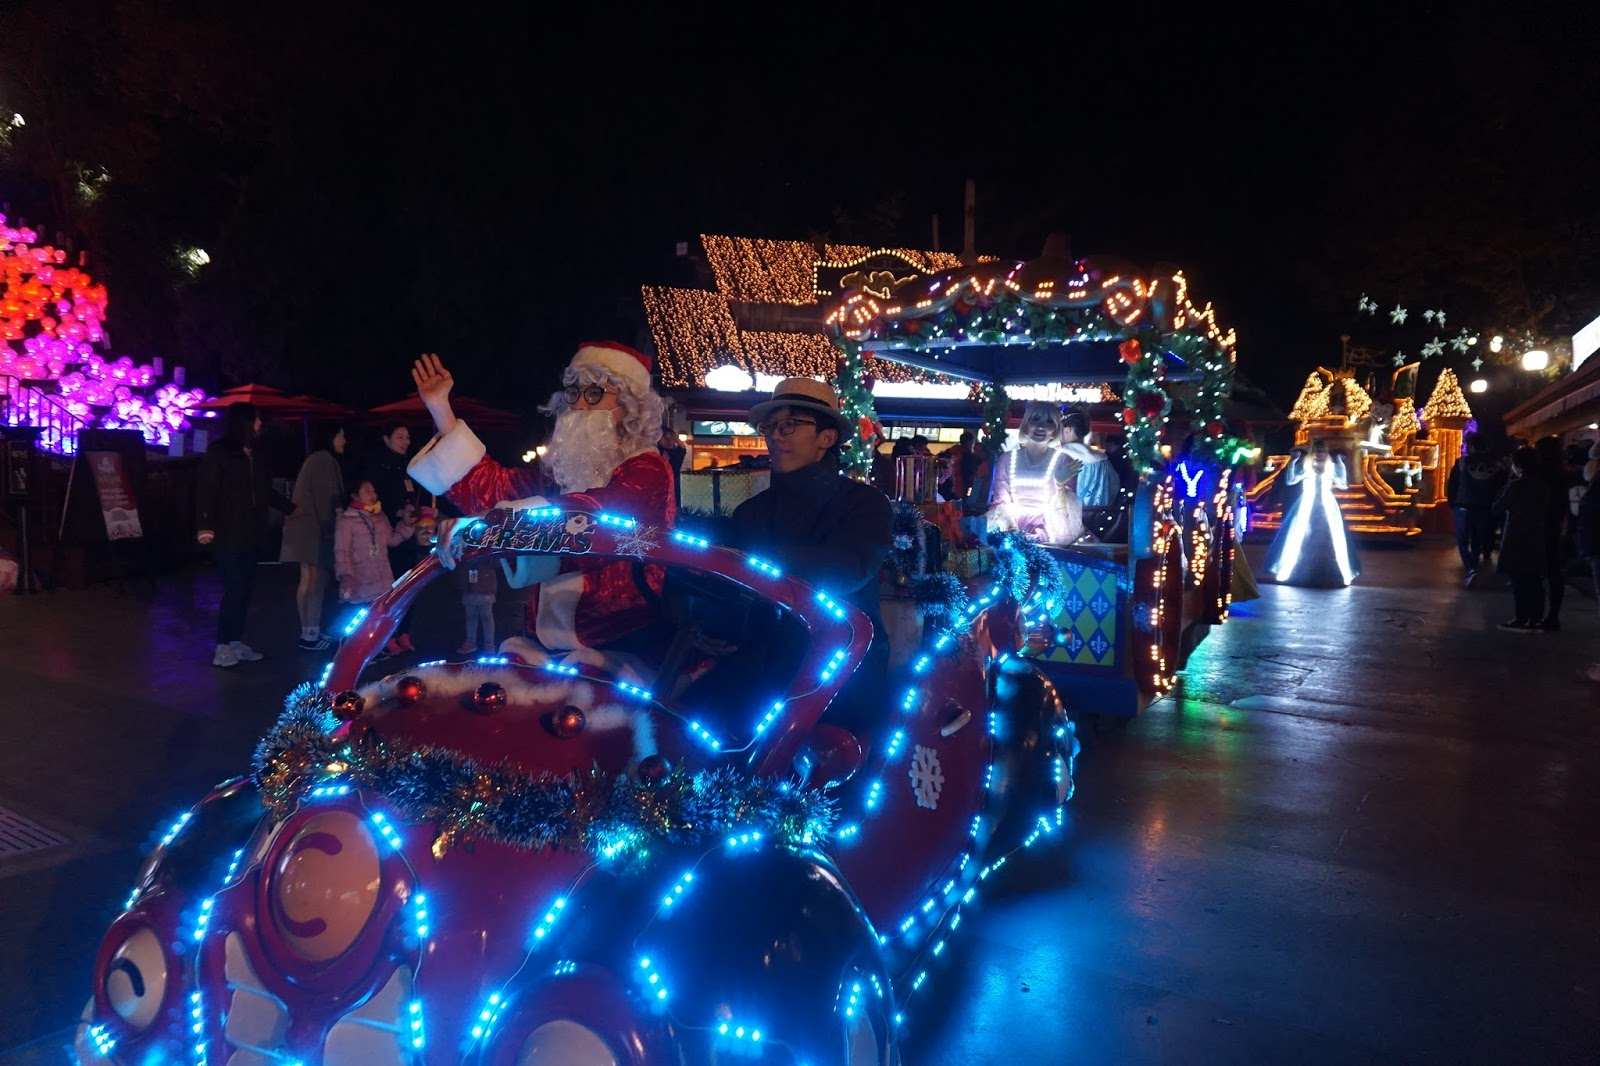 e world starlight santa festival is being held every weekend until december 25 e world as the largest theme park in daegu has been entertaining people